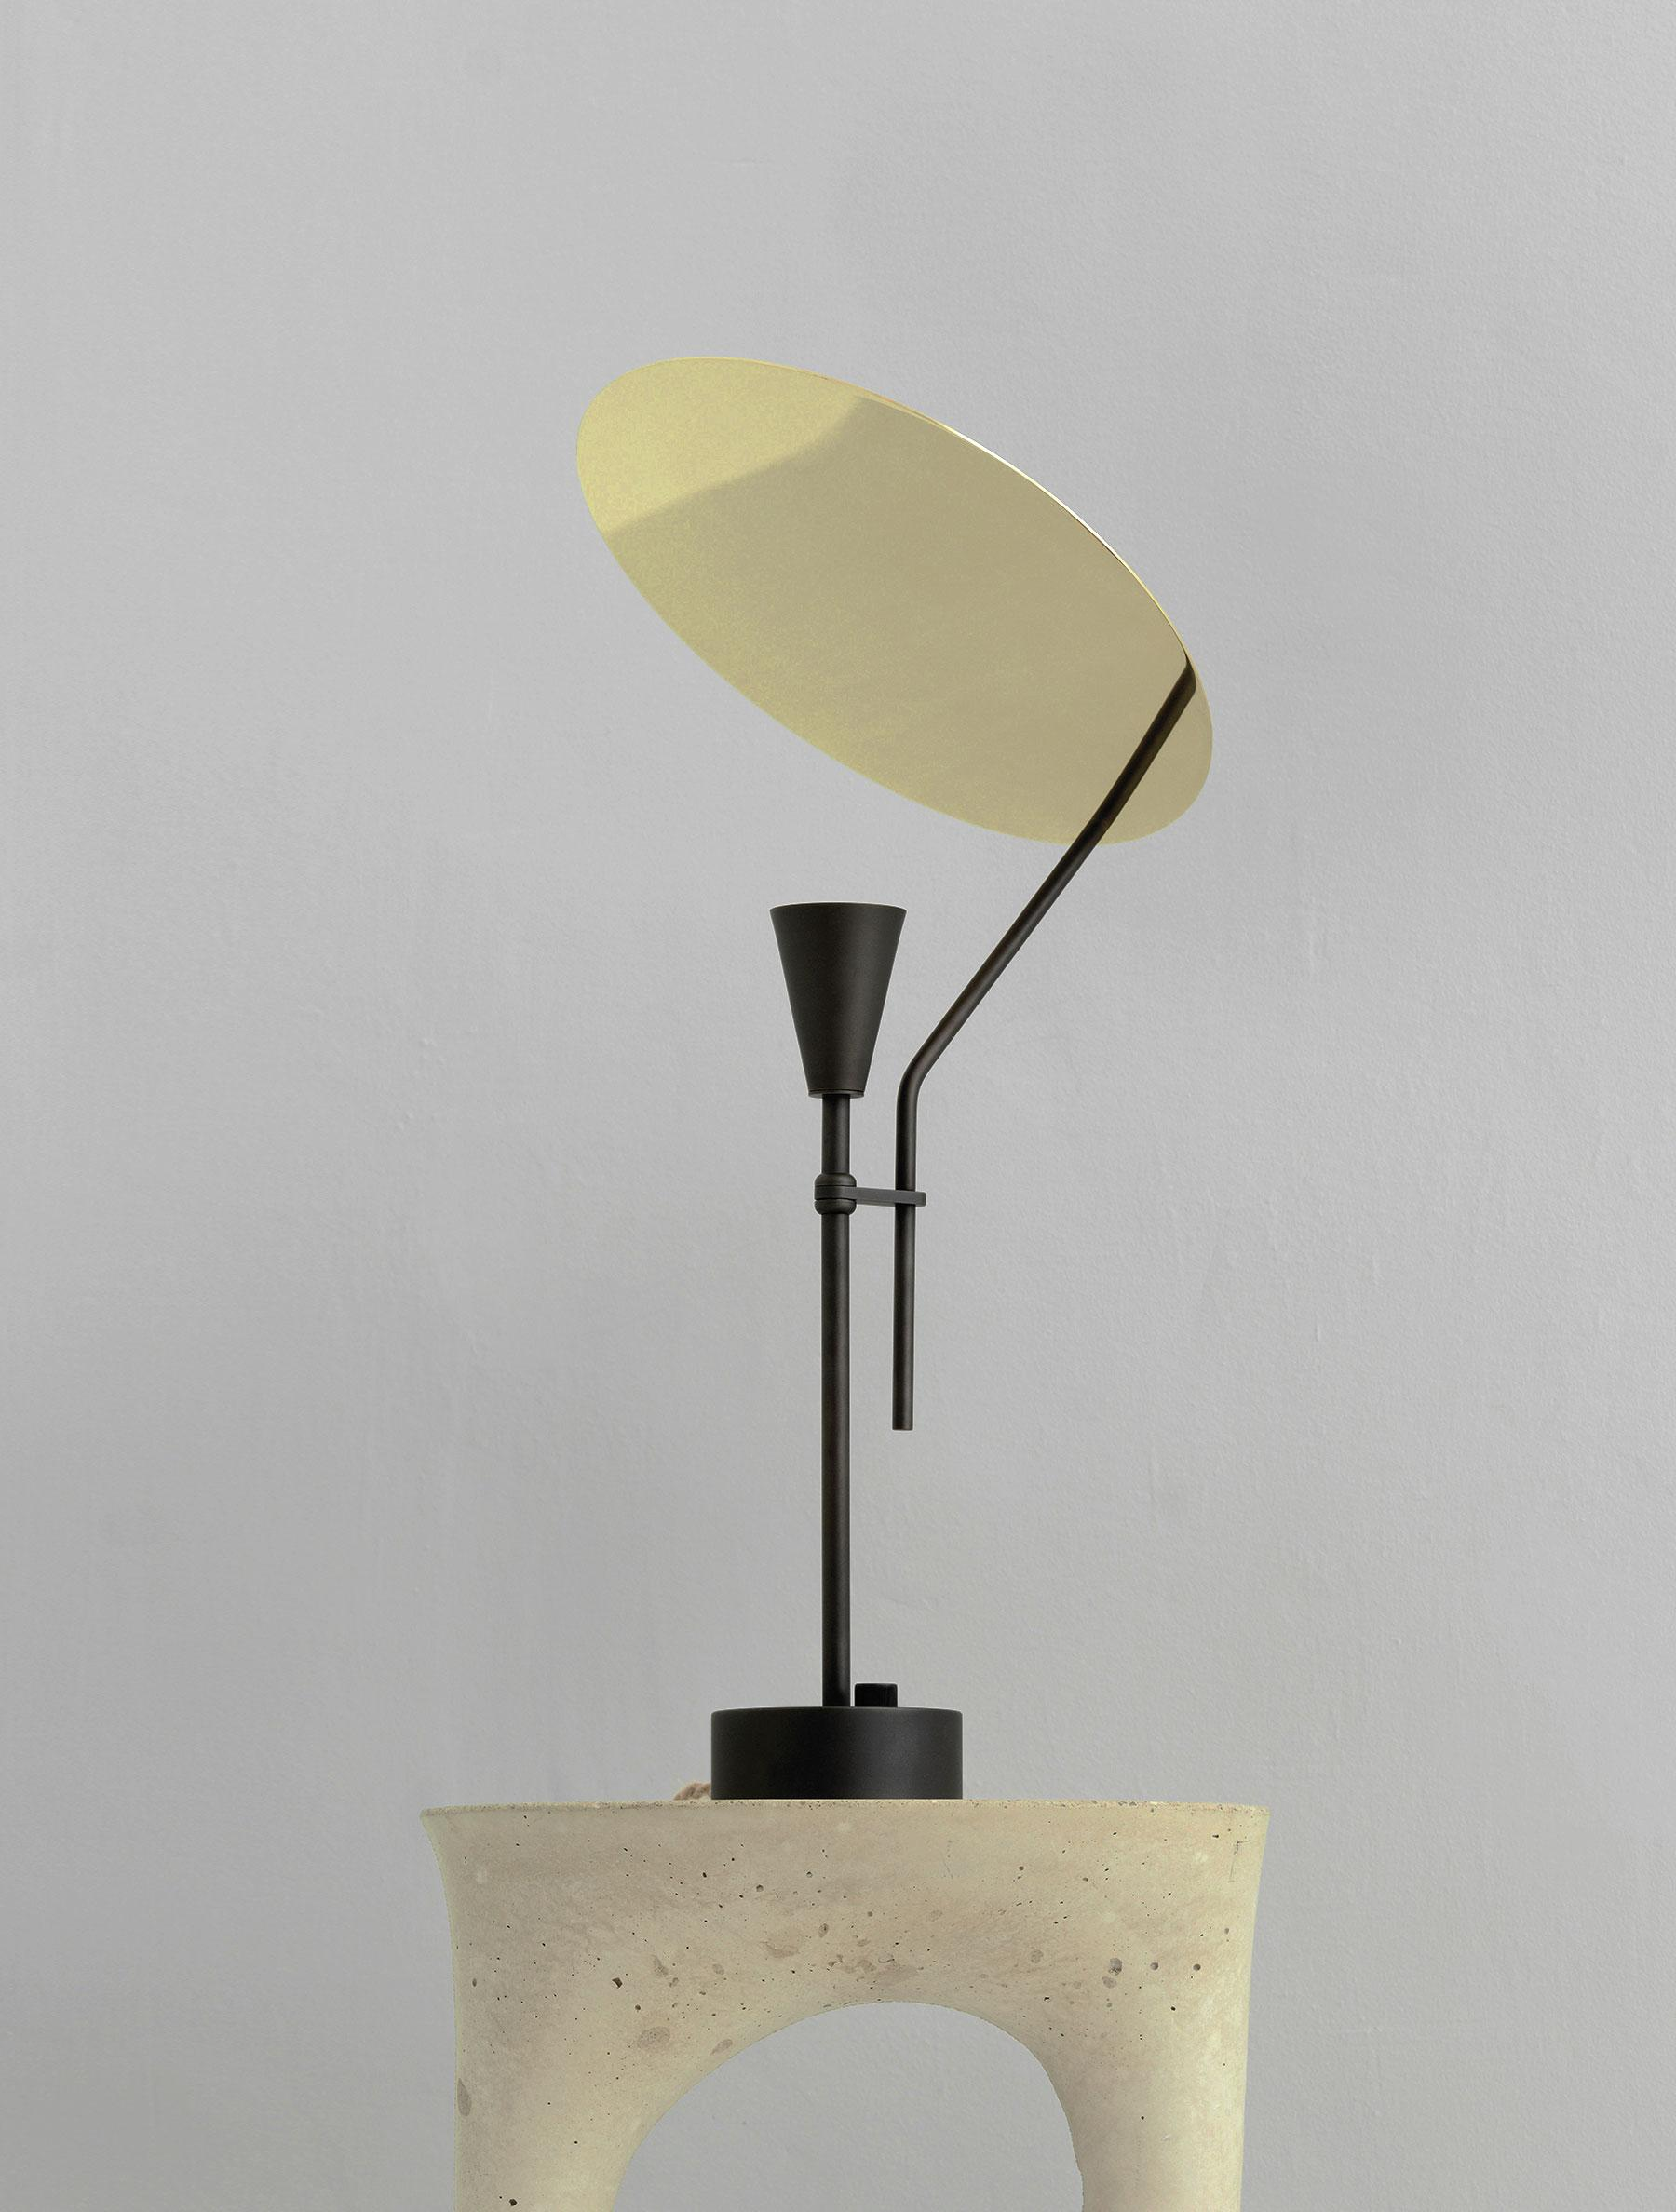 Sail Table Lamp shown in Maker Black